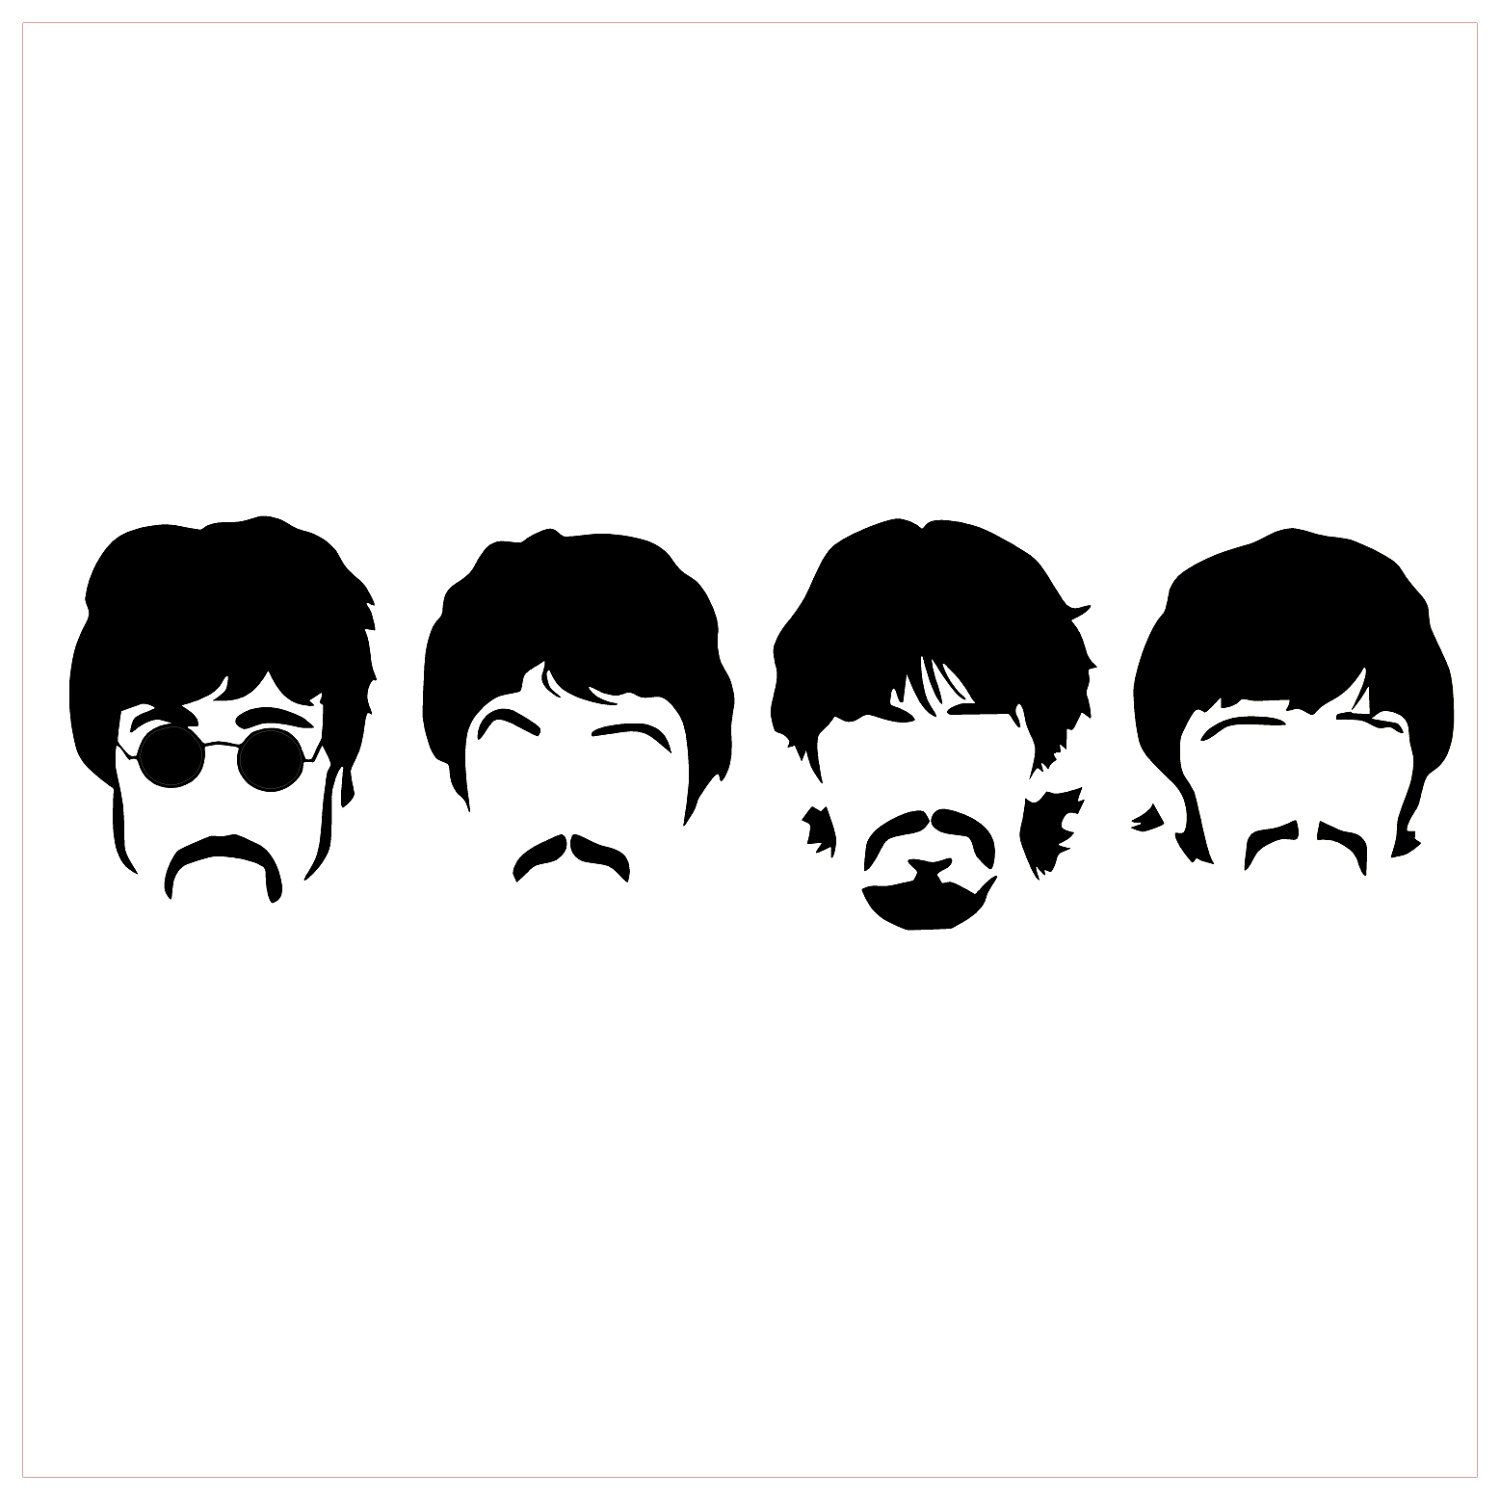 the beatles silhouette band vinyl sticker decal 35 00 via etsy